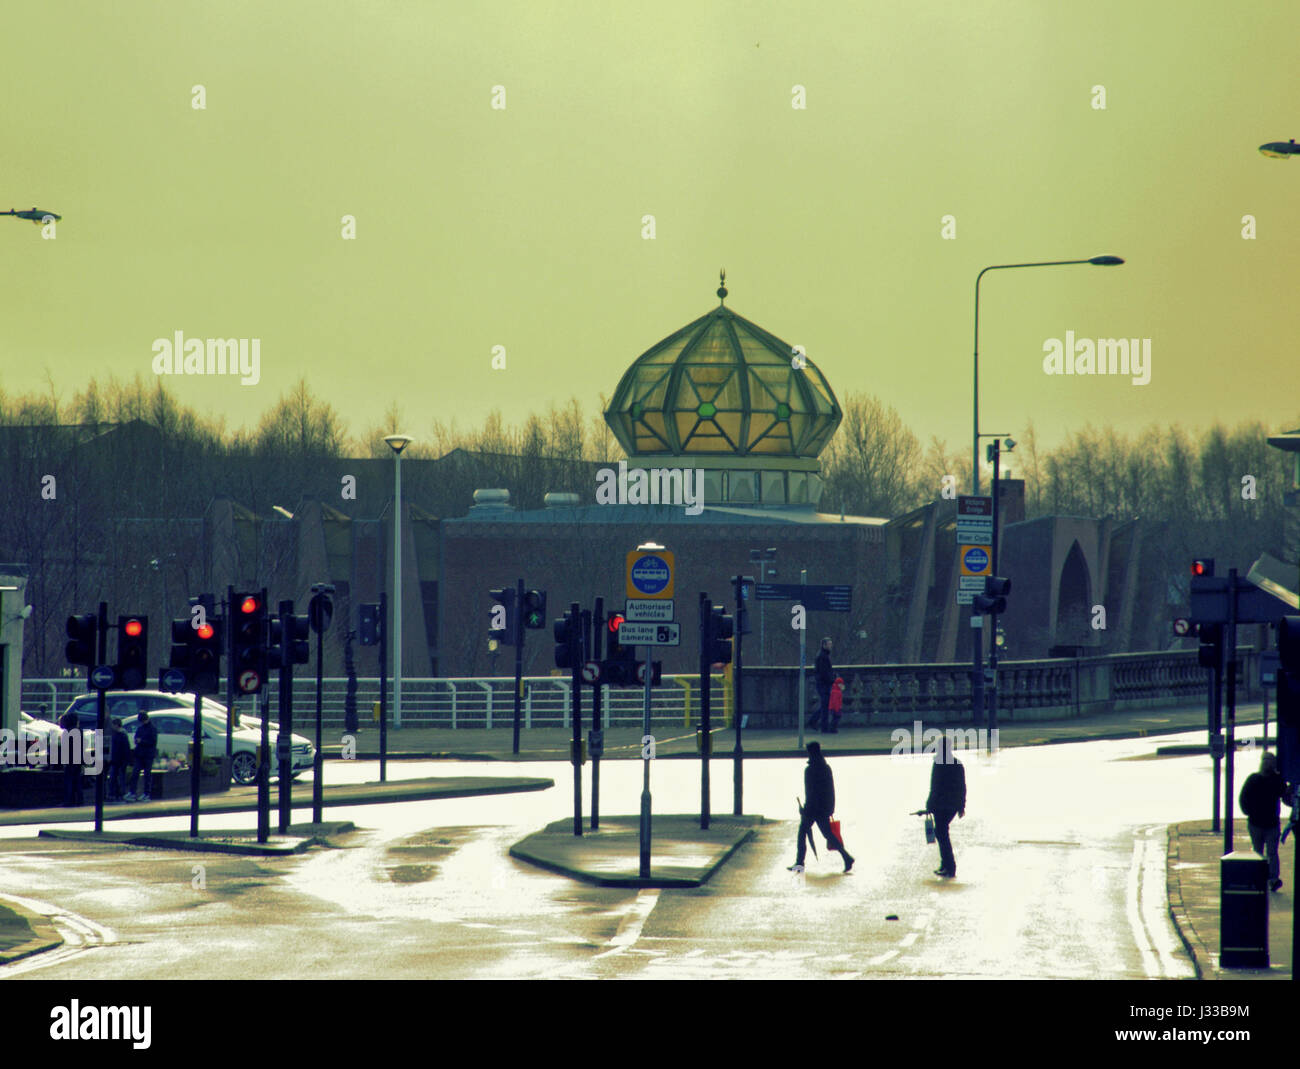 Glasgow Gorbals  Mosque red light end of the road silhouette Islam cityscape - Stock Image